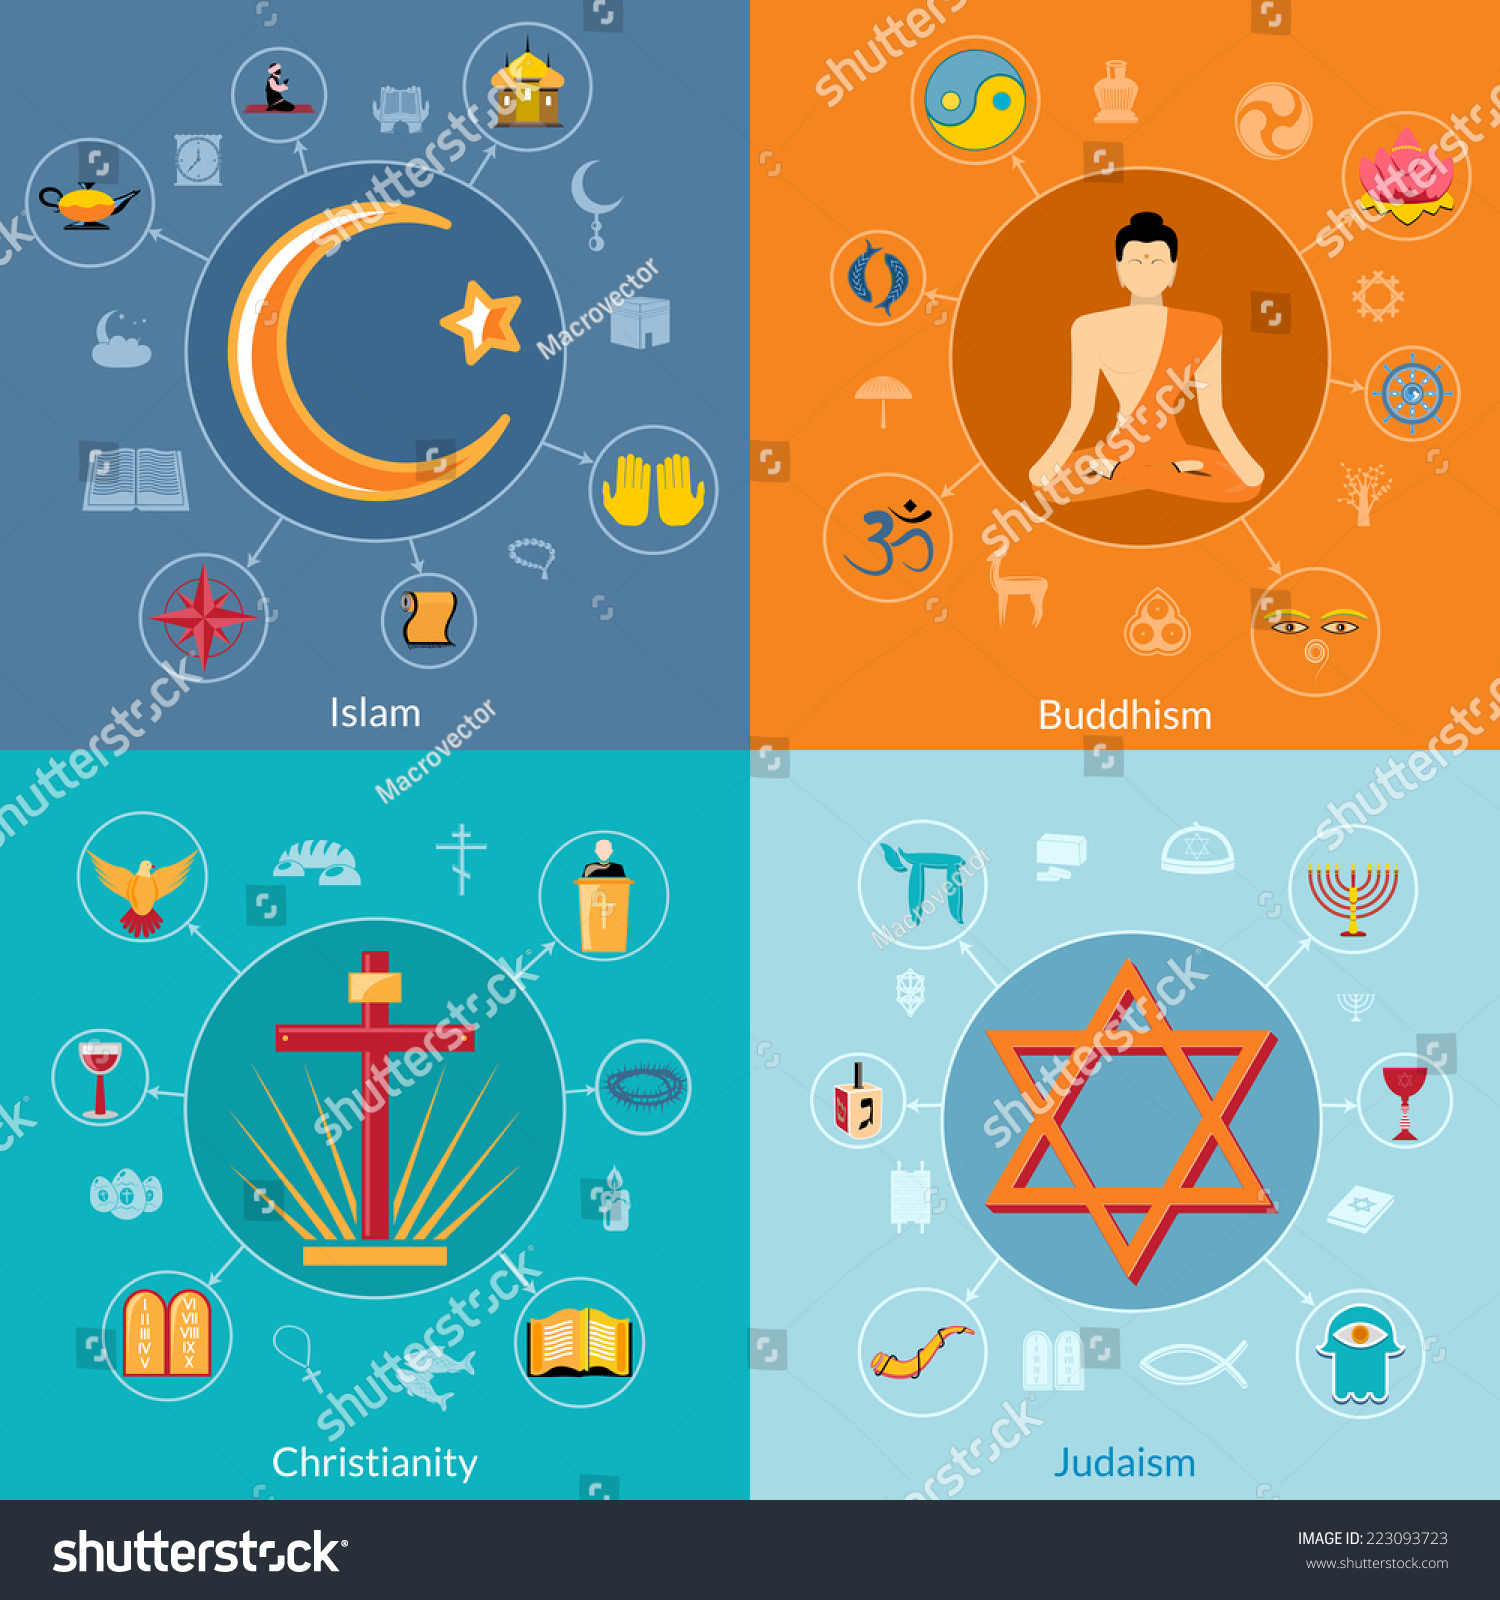 judaism hinduism venn diagram recessed light wiring buddhism islam and christianity